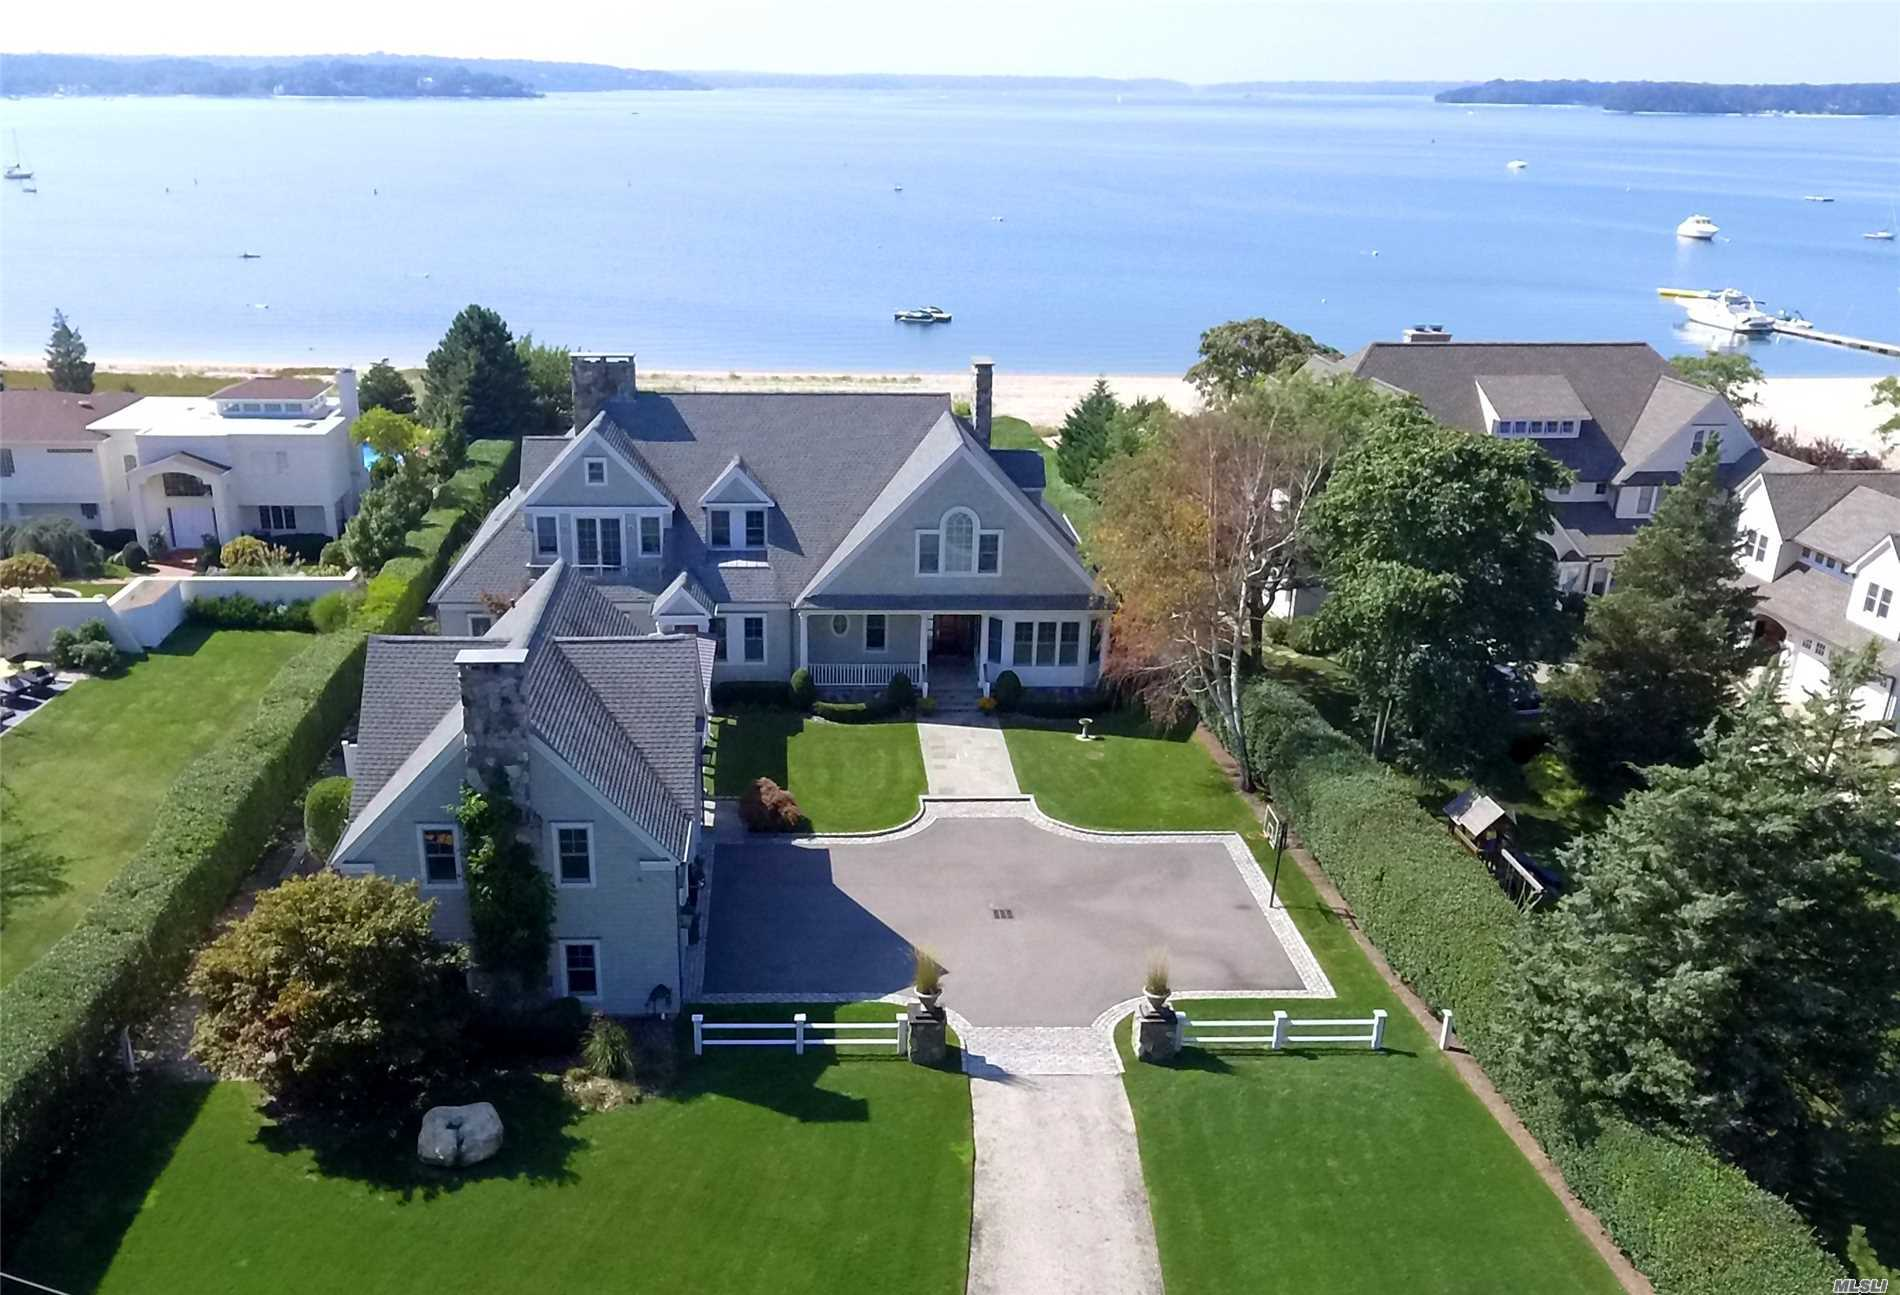 A Rare Waterfront Offering, Beautifully Situated On The Sought After Bay Side Of Asharoken. Custom Built 6300 Sf 2 Story Shingle Style Home W/Heated Ig Pool & Lush Green Lawn Stretching To 100 Feet Of Sandy Beach W/Stunning Views & Western Sunsets. Quality Craftmanship, Exquisite Architectural Details & Custom Finishes Throughout. 10 Ft. 1st Fl. Ceilings & 9 Ft 2nd Fl. Radiant Heated Floors. Spectacular Great Rm W/Fp, Kit & Bth Over 3-Car Garage.Generator.14 Ft Elevation. Private Beach & Mooring